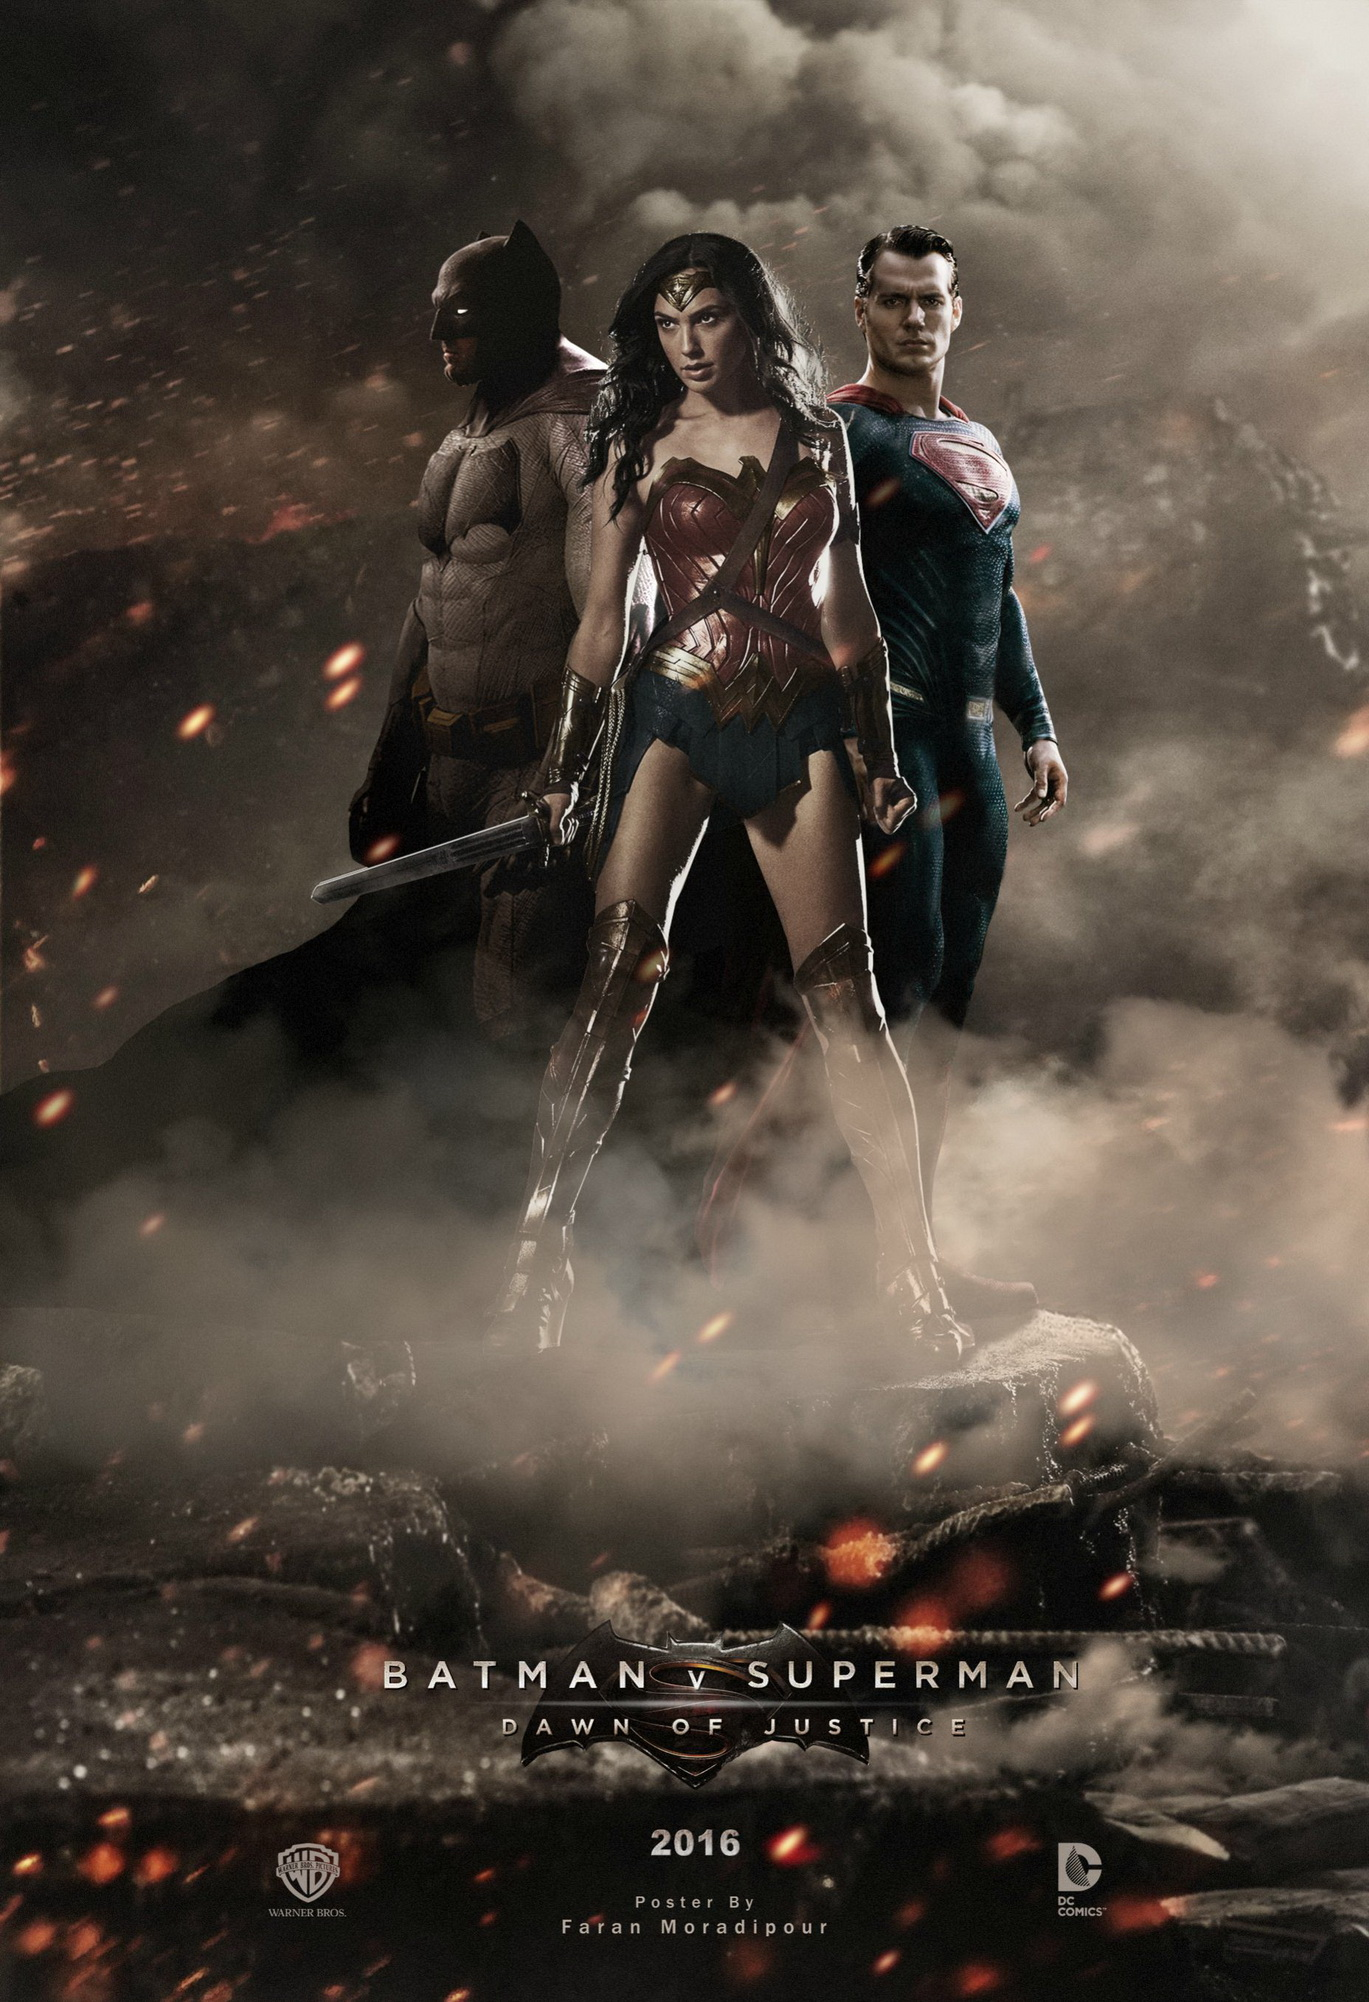 Gal Gadot Superman Vs Batman Wonder Woman Justice League Promopics And Posters 32